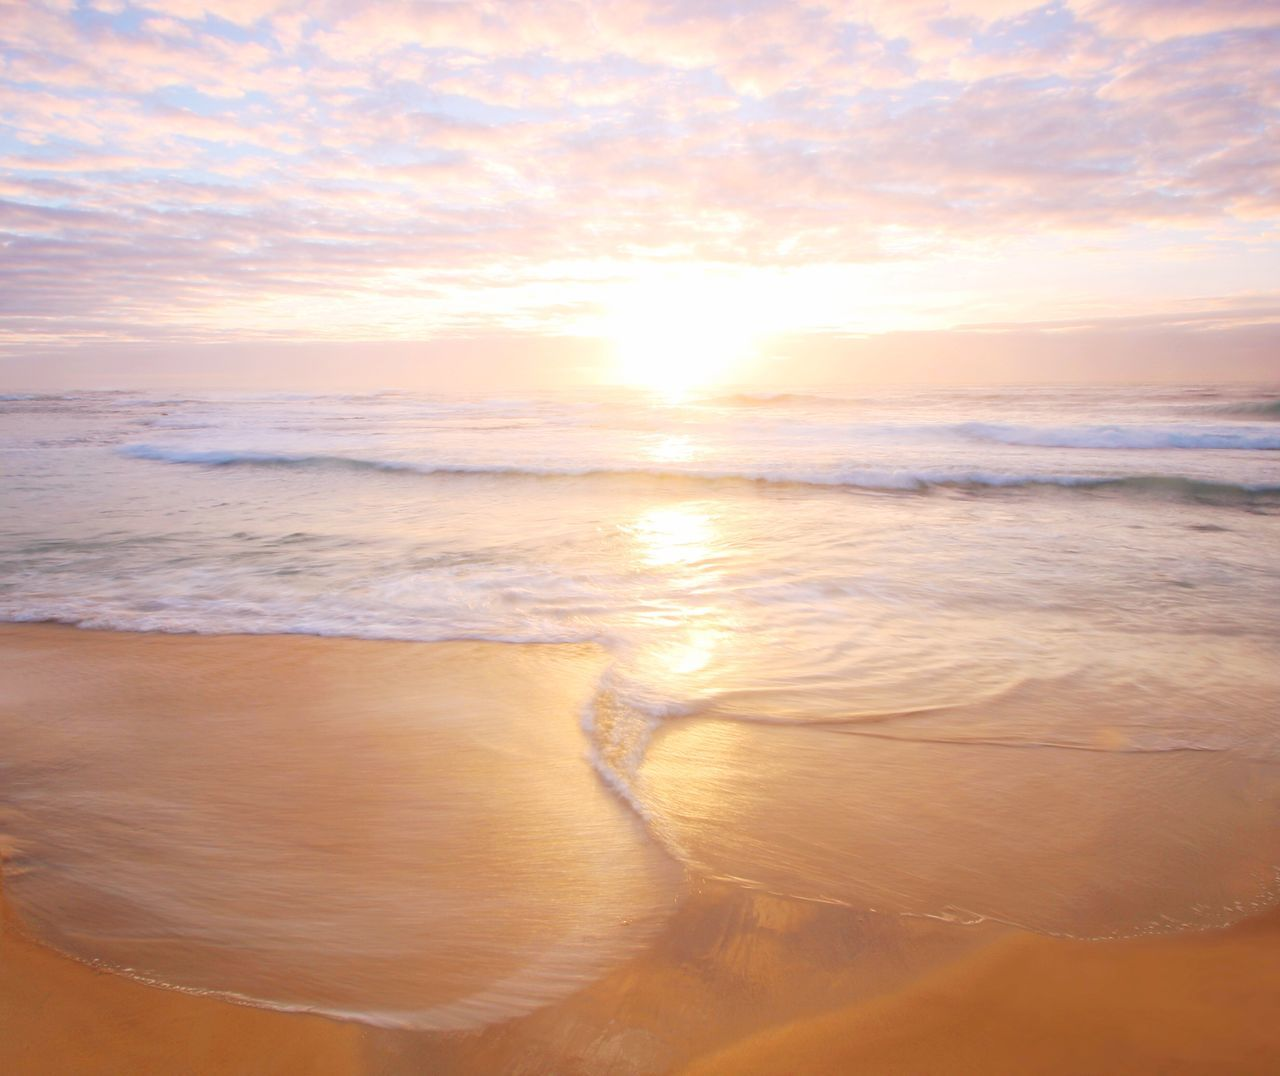 Peace Beach Sea Sand Nature Beauty In Nature Sunsete Sky Scenics Cloud - Sky Wave Tranquil Scene Horizon Over Water Tranquility Water No People OutdoorsSeascape Ocean Long Exposure Merewether EyeEmNewHere Millennial Pink